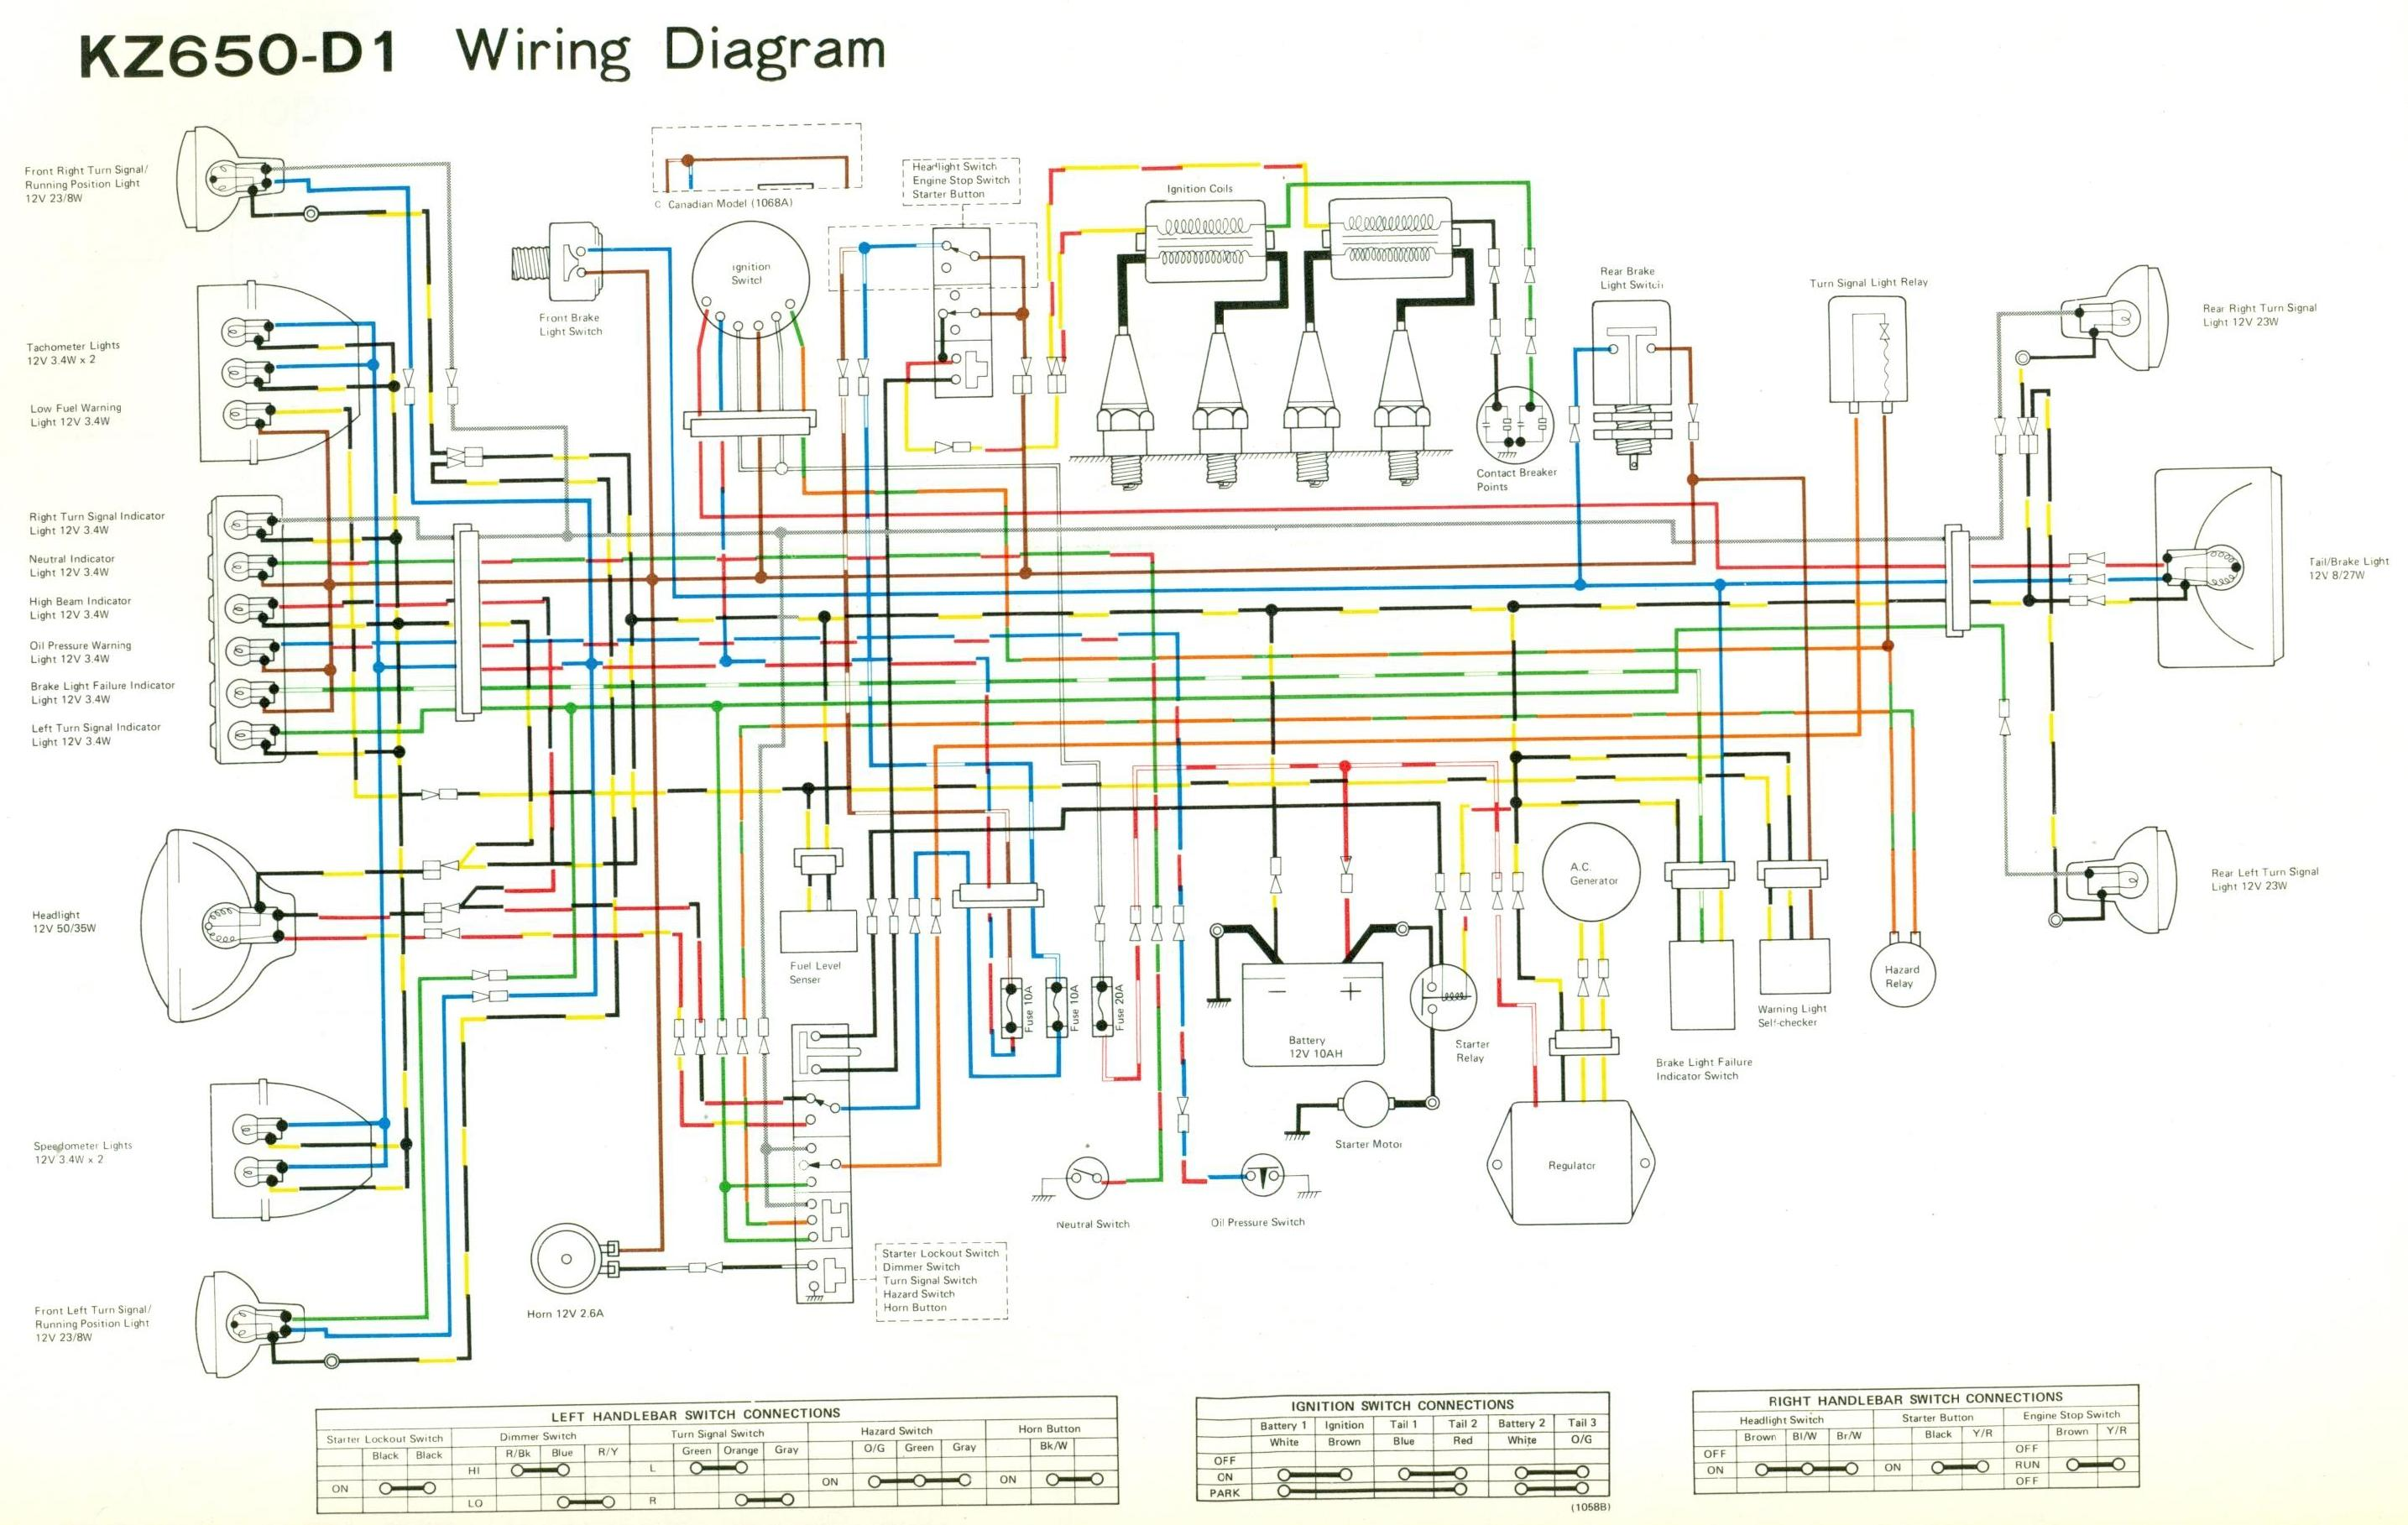 Kz1000 Wiring Diagram -1997 Freightliner Wiring Schematics | Begeboy Wiring  Diagram Source | 1980 Kz1000 Wiring Diagram Color |  | Begeboy Wiring Diagram Source